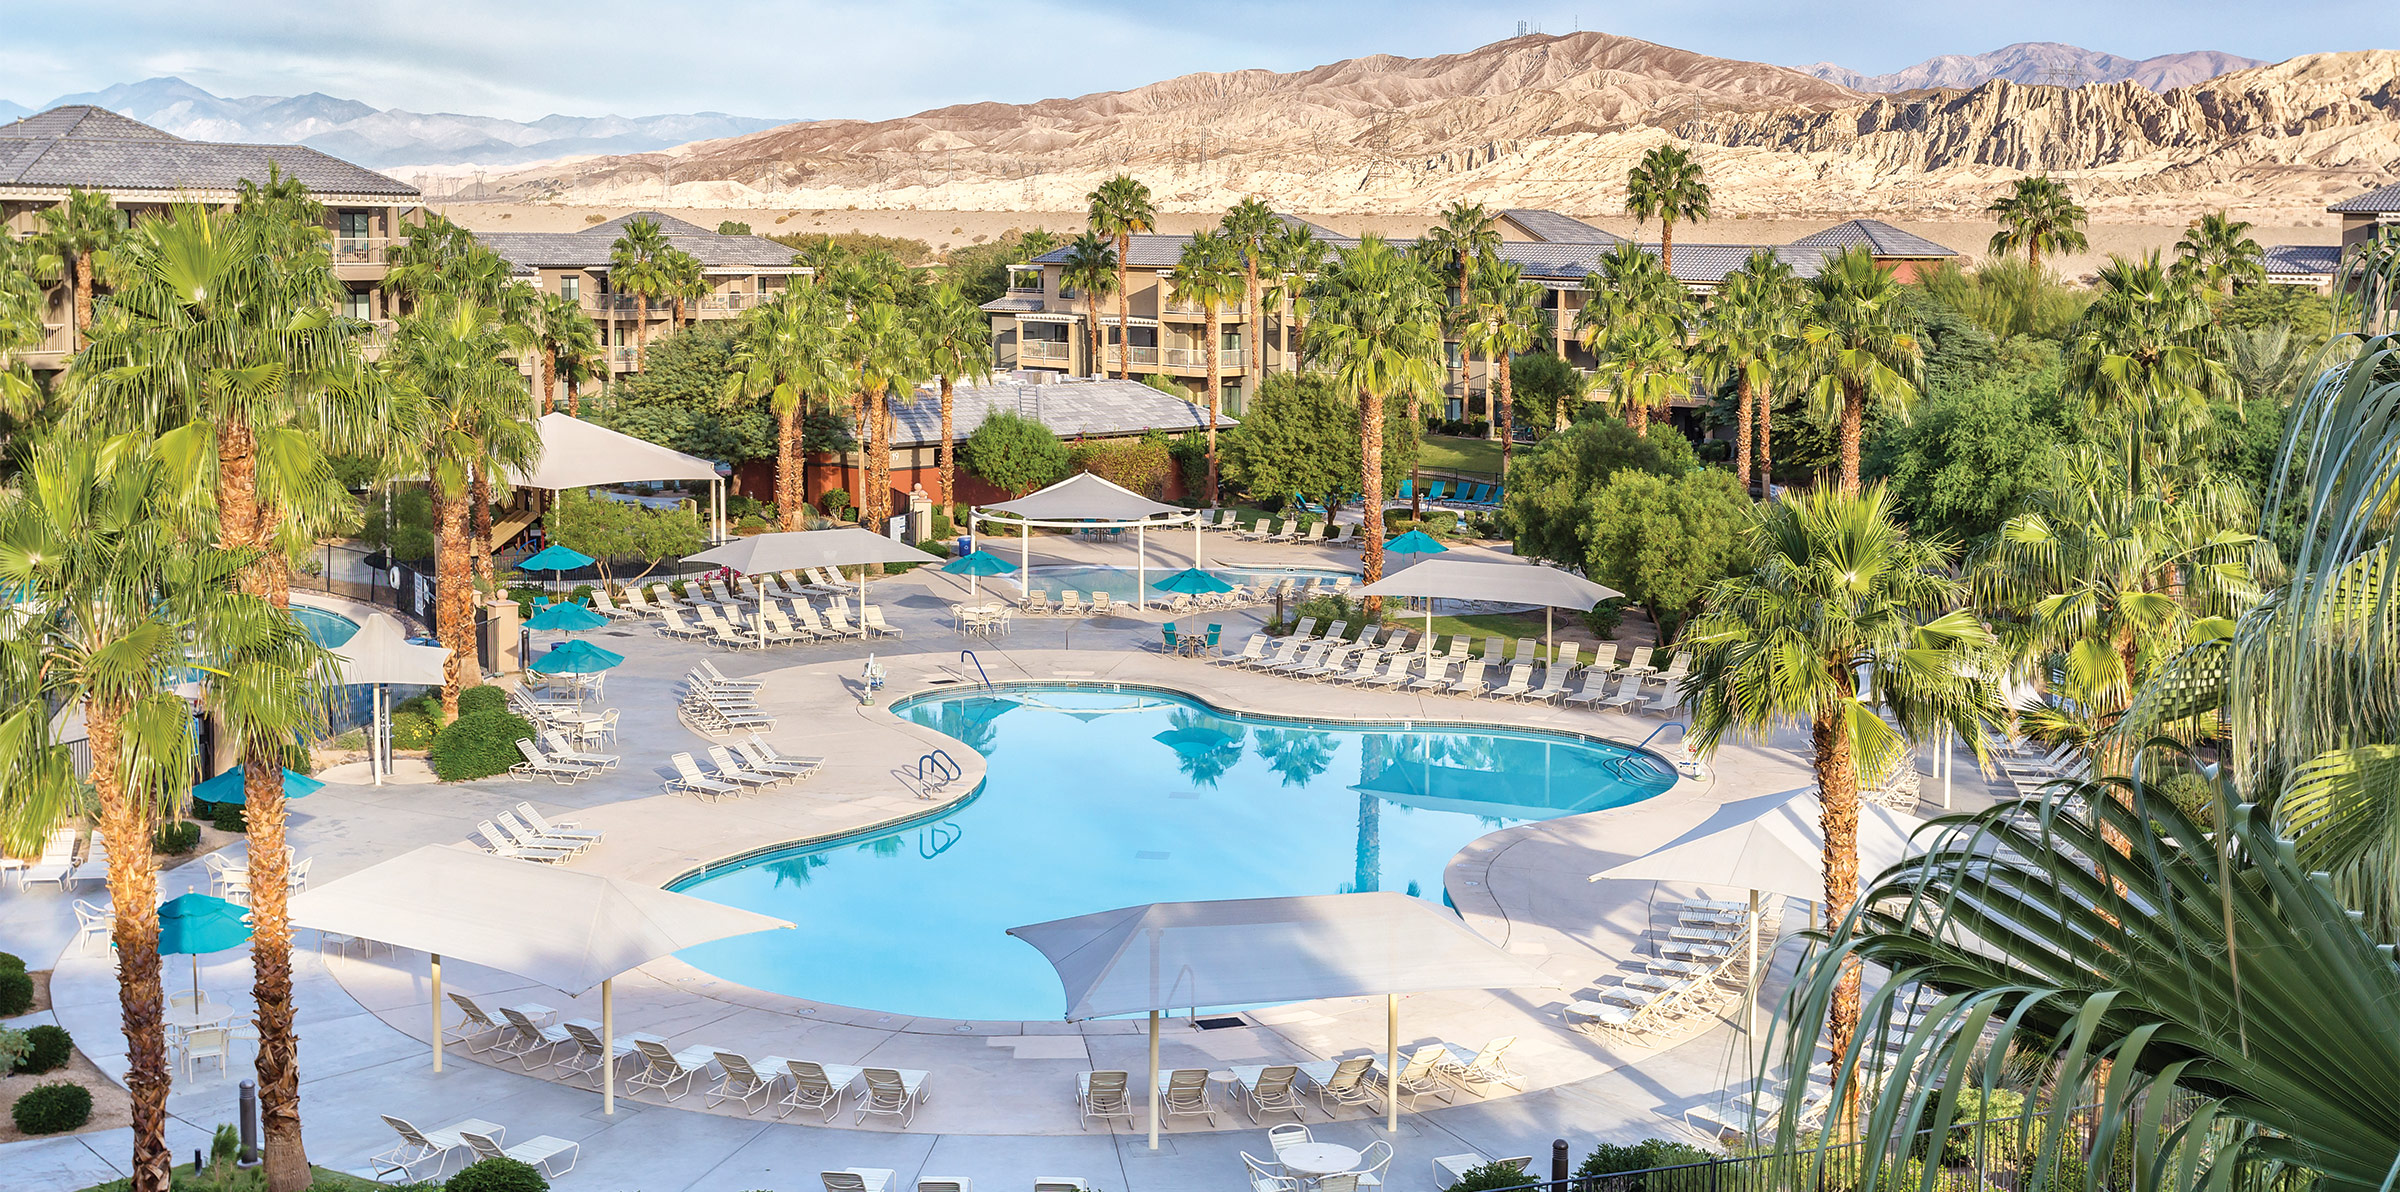 Apartment 1 Bedroom 1 Bath In Indio  CA   Palm Springs  5 miles from COACHELLA photo 20364272